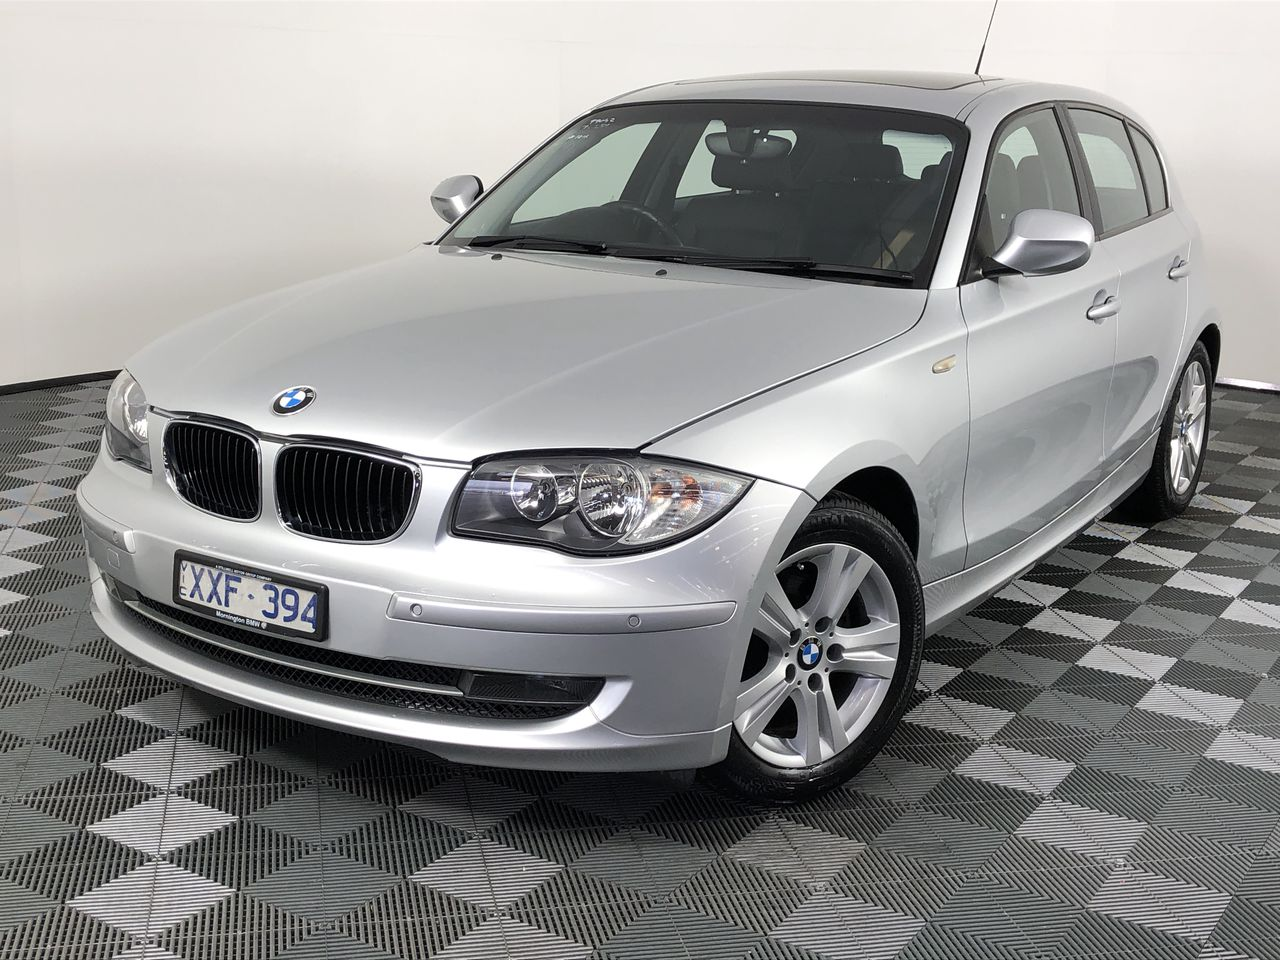 2010 BMW 1 18d E87 Turbo Diesel Automatic Hatchback